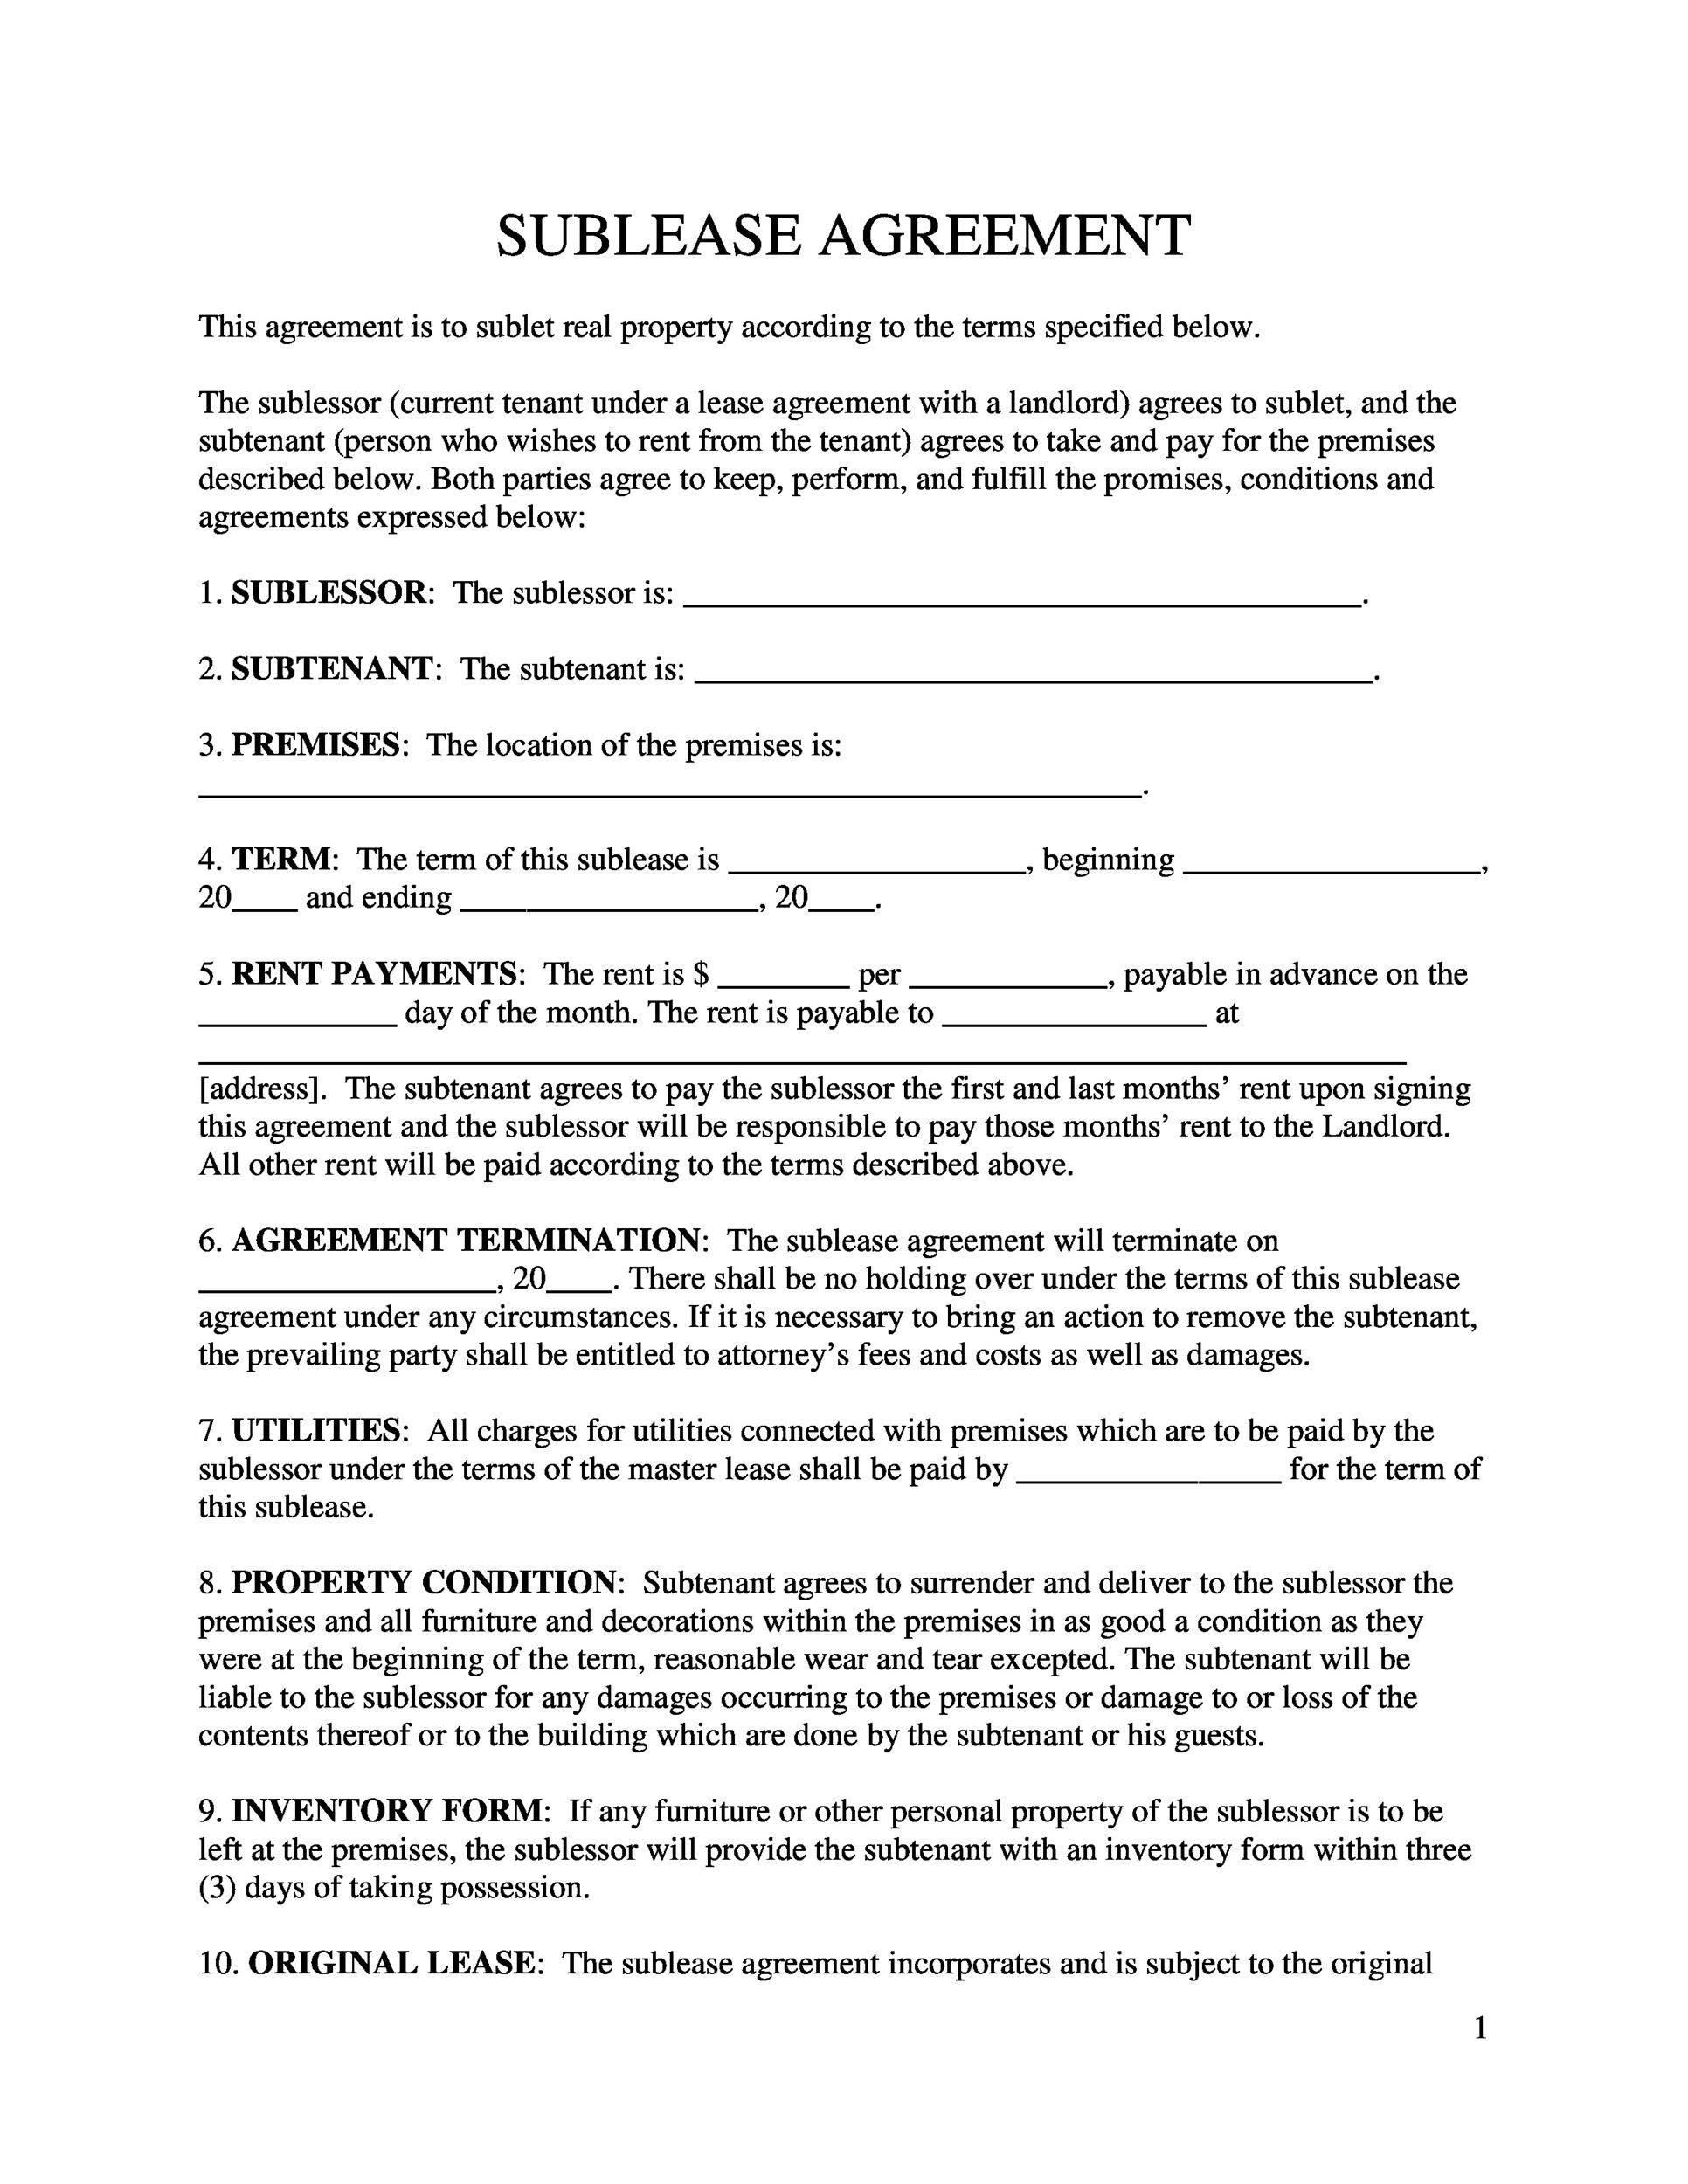 005 Fascinating Free Sublease Agreement Template Pdf Photo  Room Rental Car Form Residential LeaseFull